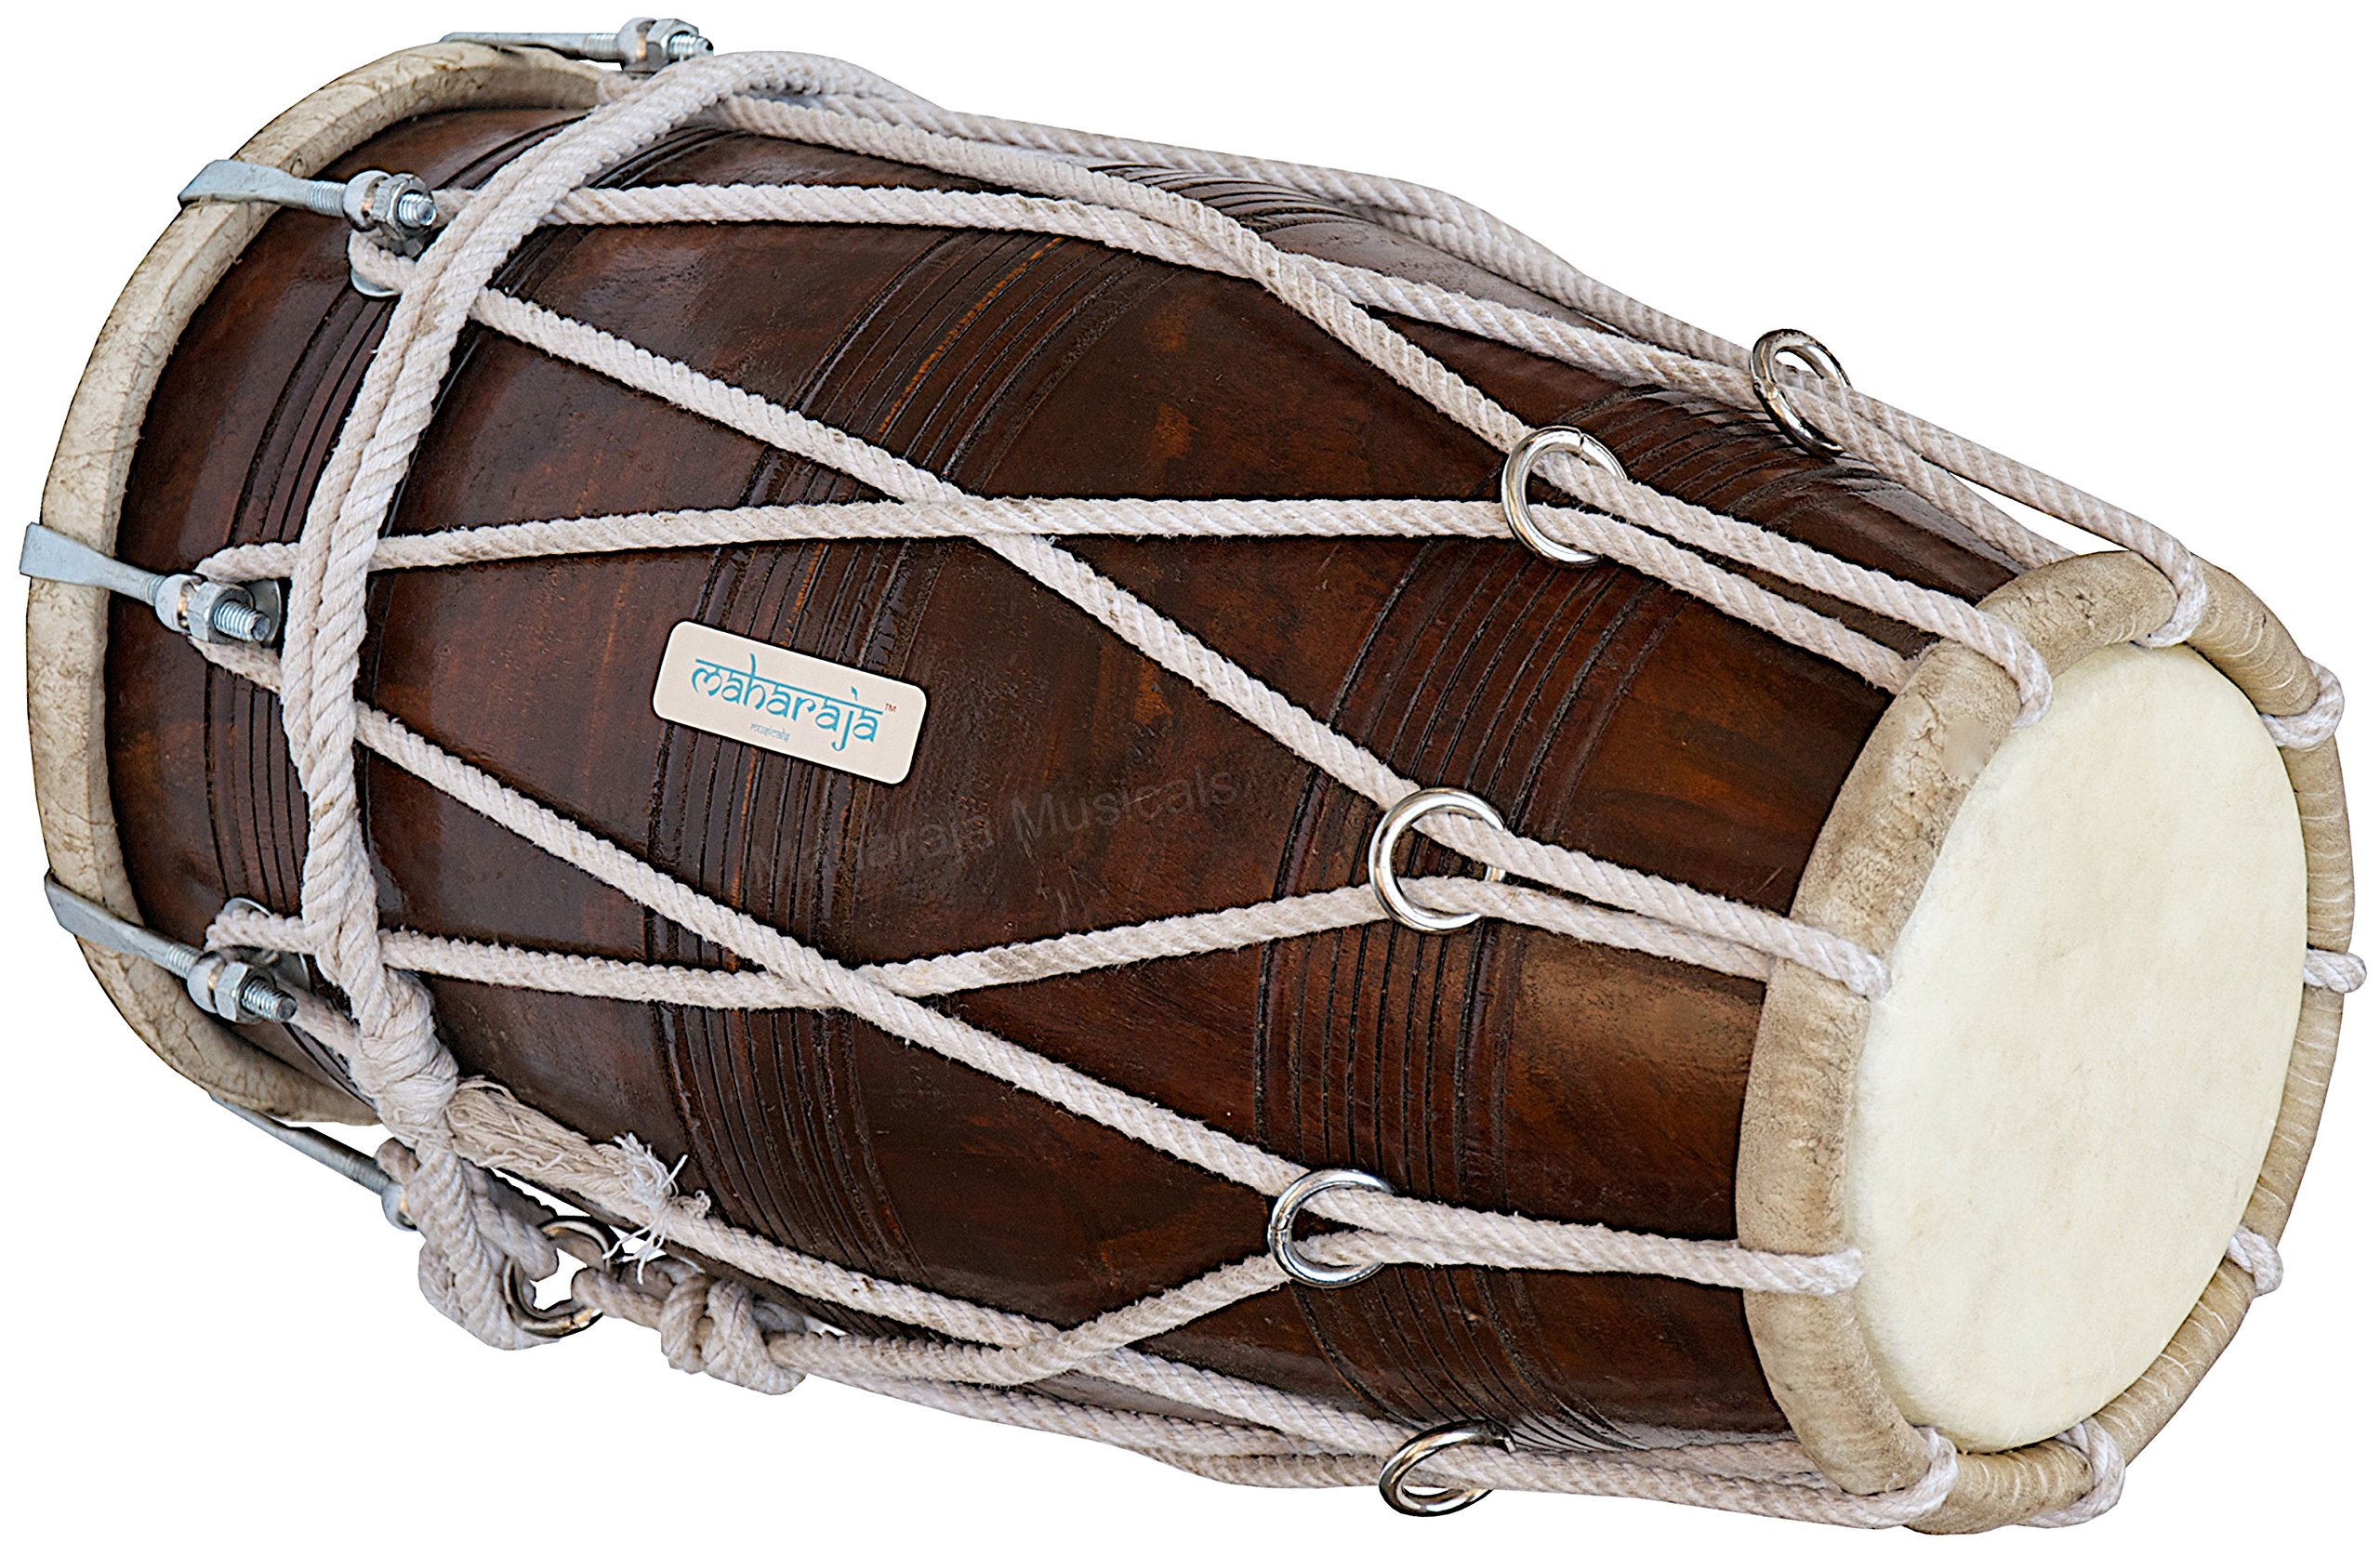 Special Dholak Drum by Maharaja Musicals, Professional Quality, Sheesham Wood, Padded Bag, Spanner, Dholki Musicals Instrument (PDI-BBC) by Maharaja Musicals (Image #2)